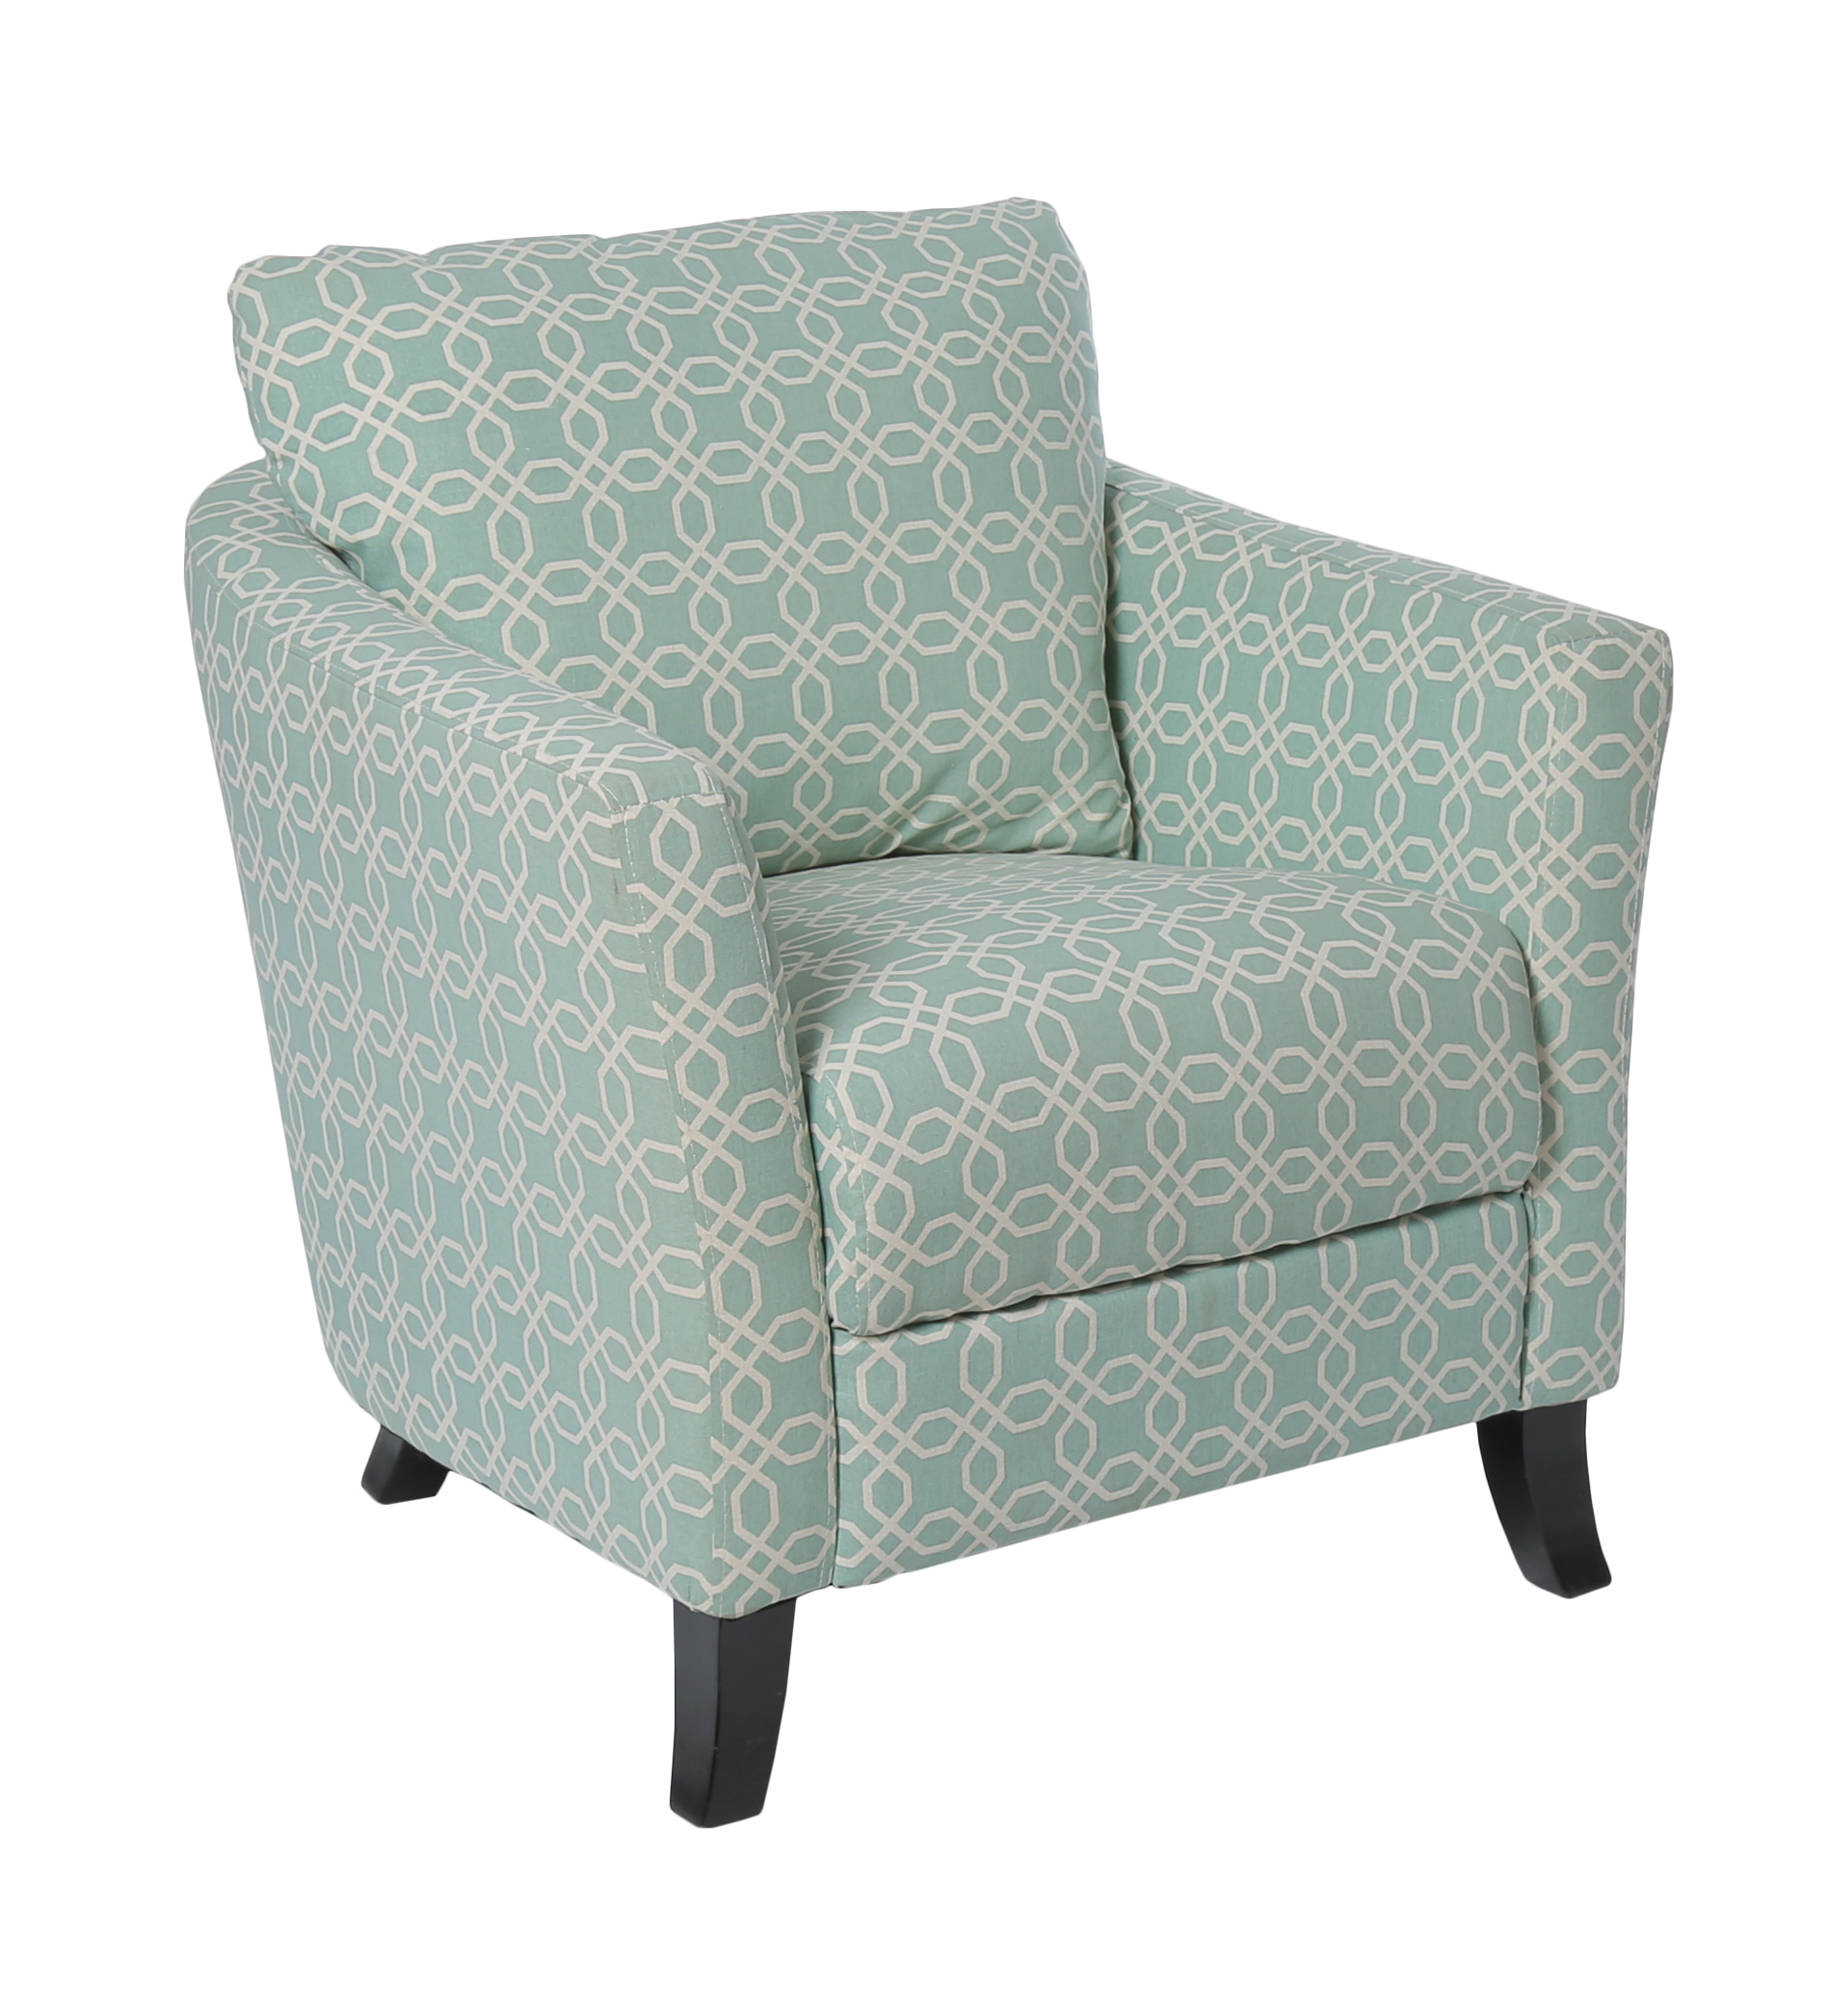 Miraculous Monarch Specialties Green White Fabric Wood Accent Chair Gamerscity Chair Design For Home Gamerscityorg